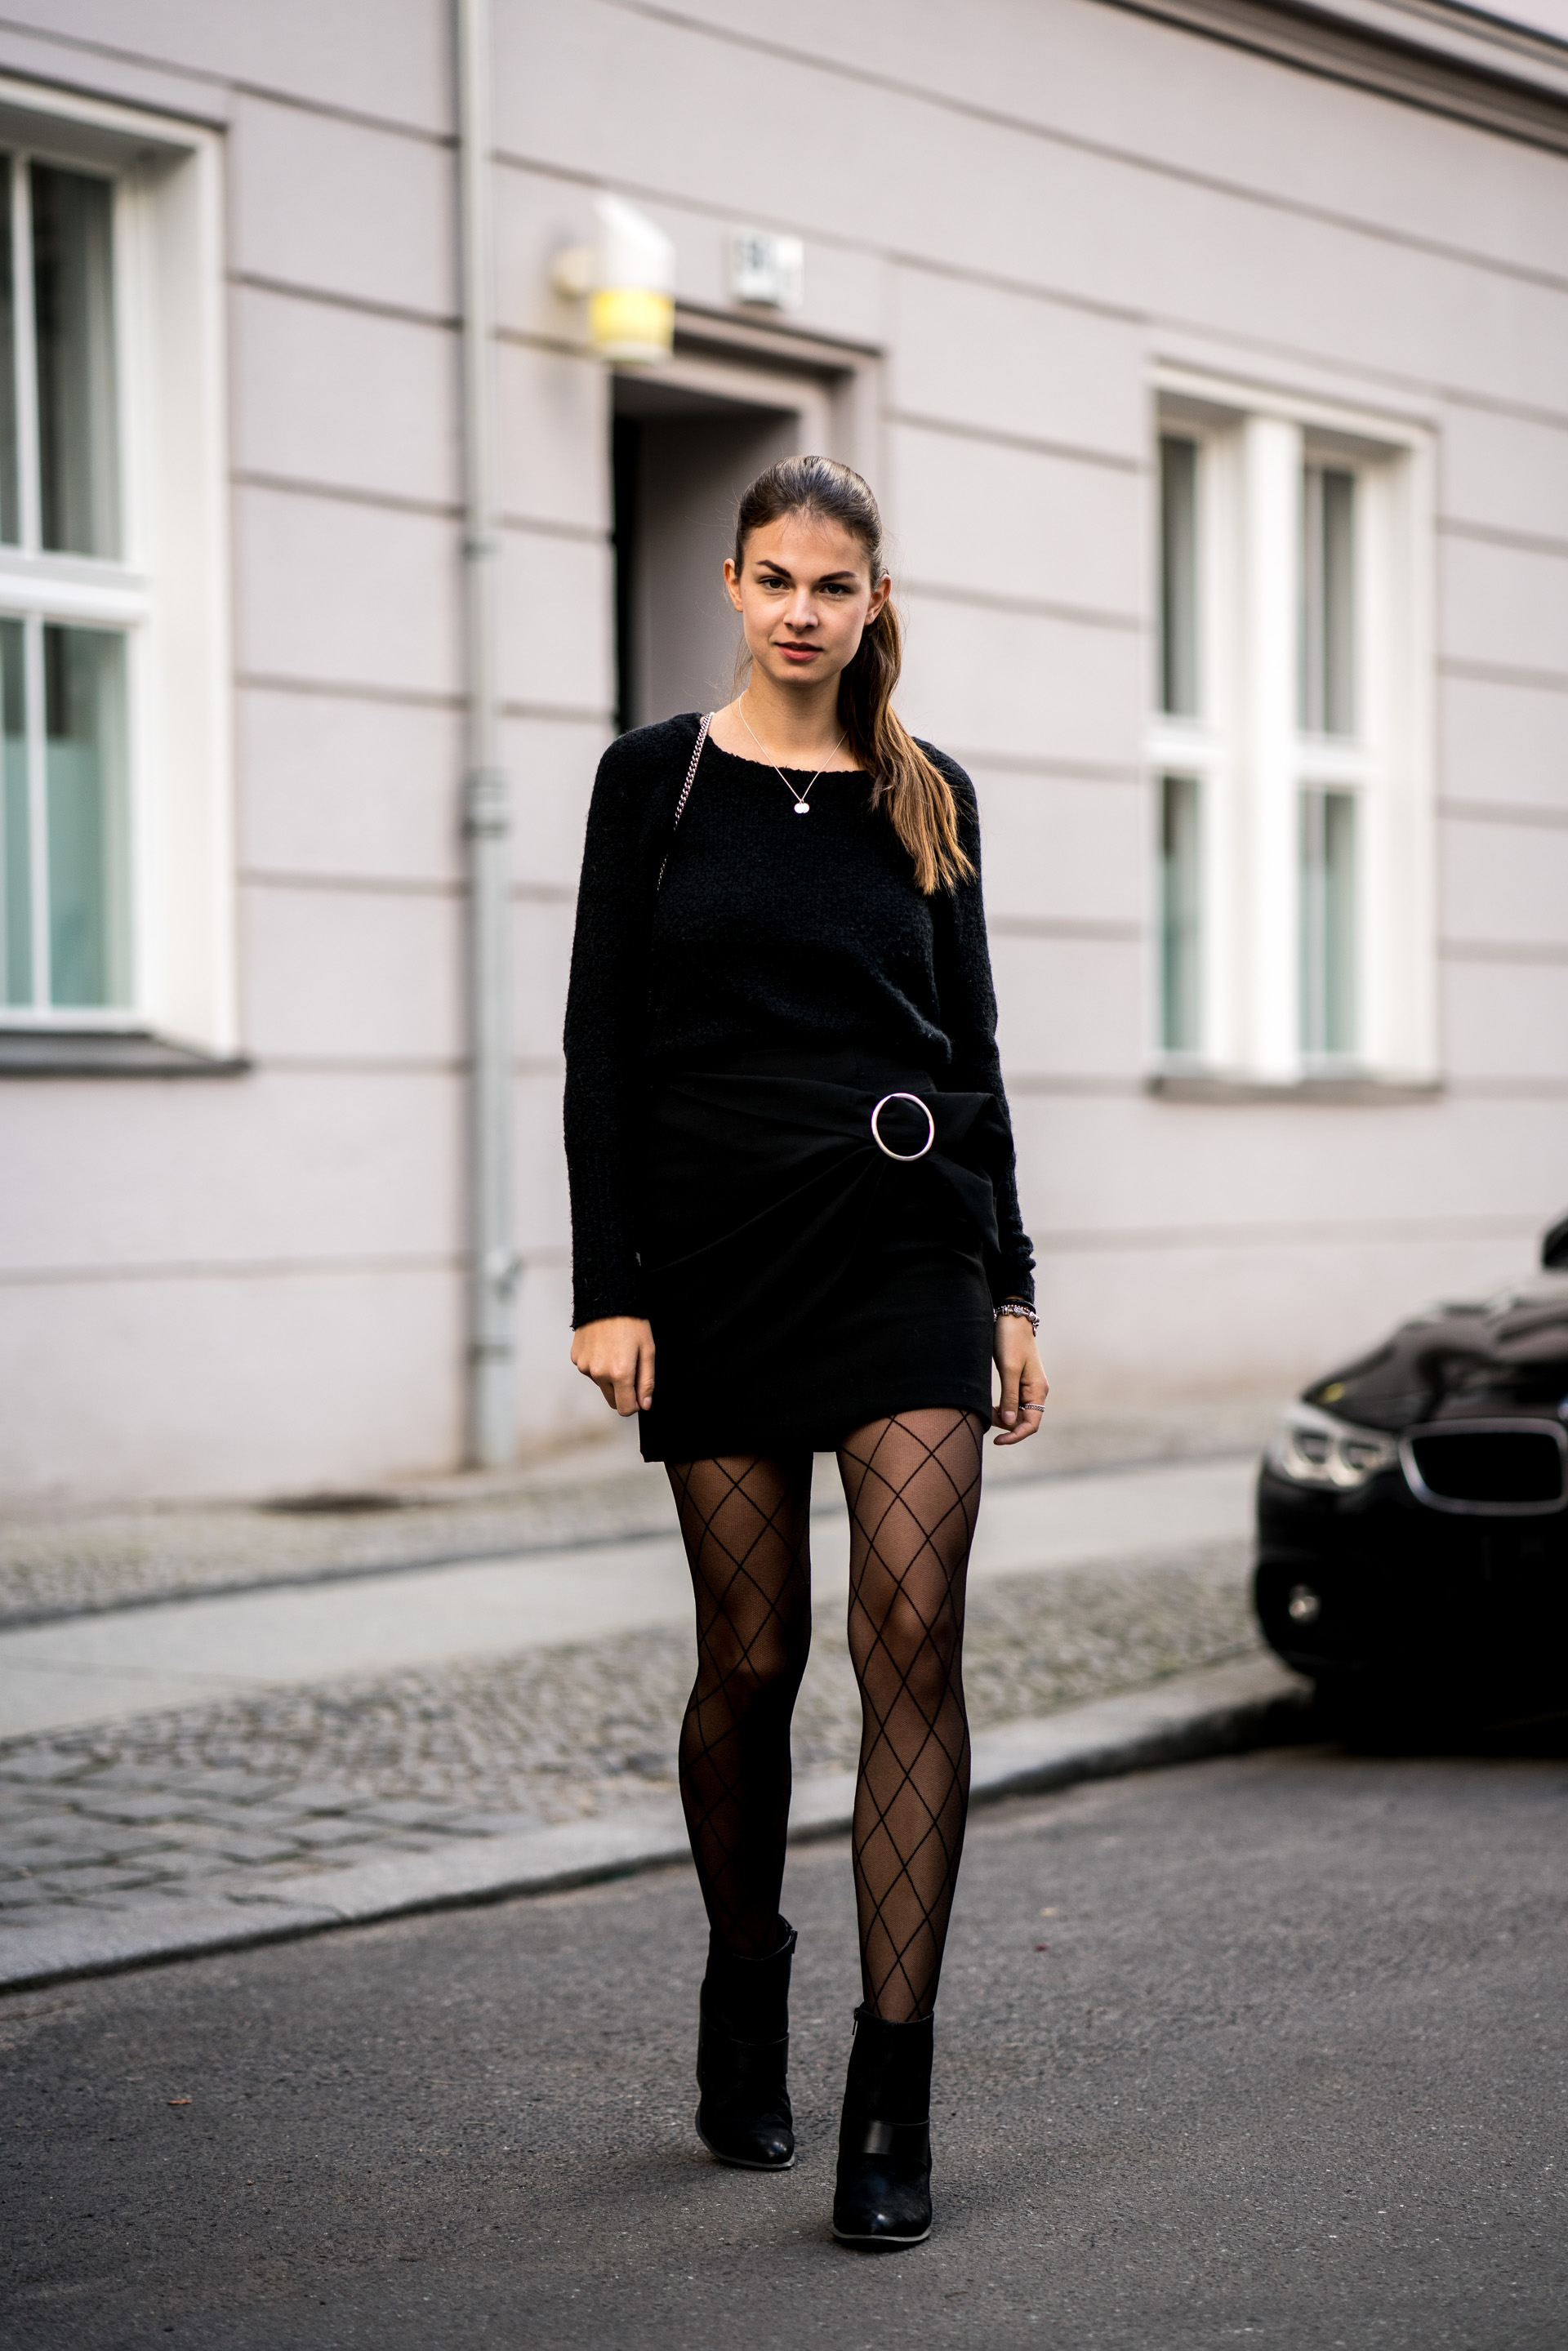 brilliant black fishnet dress outfit dress